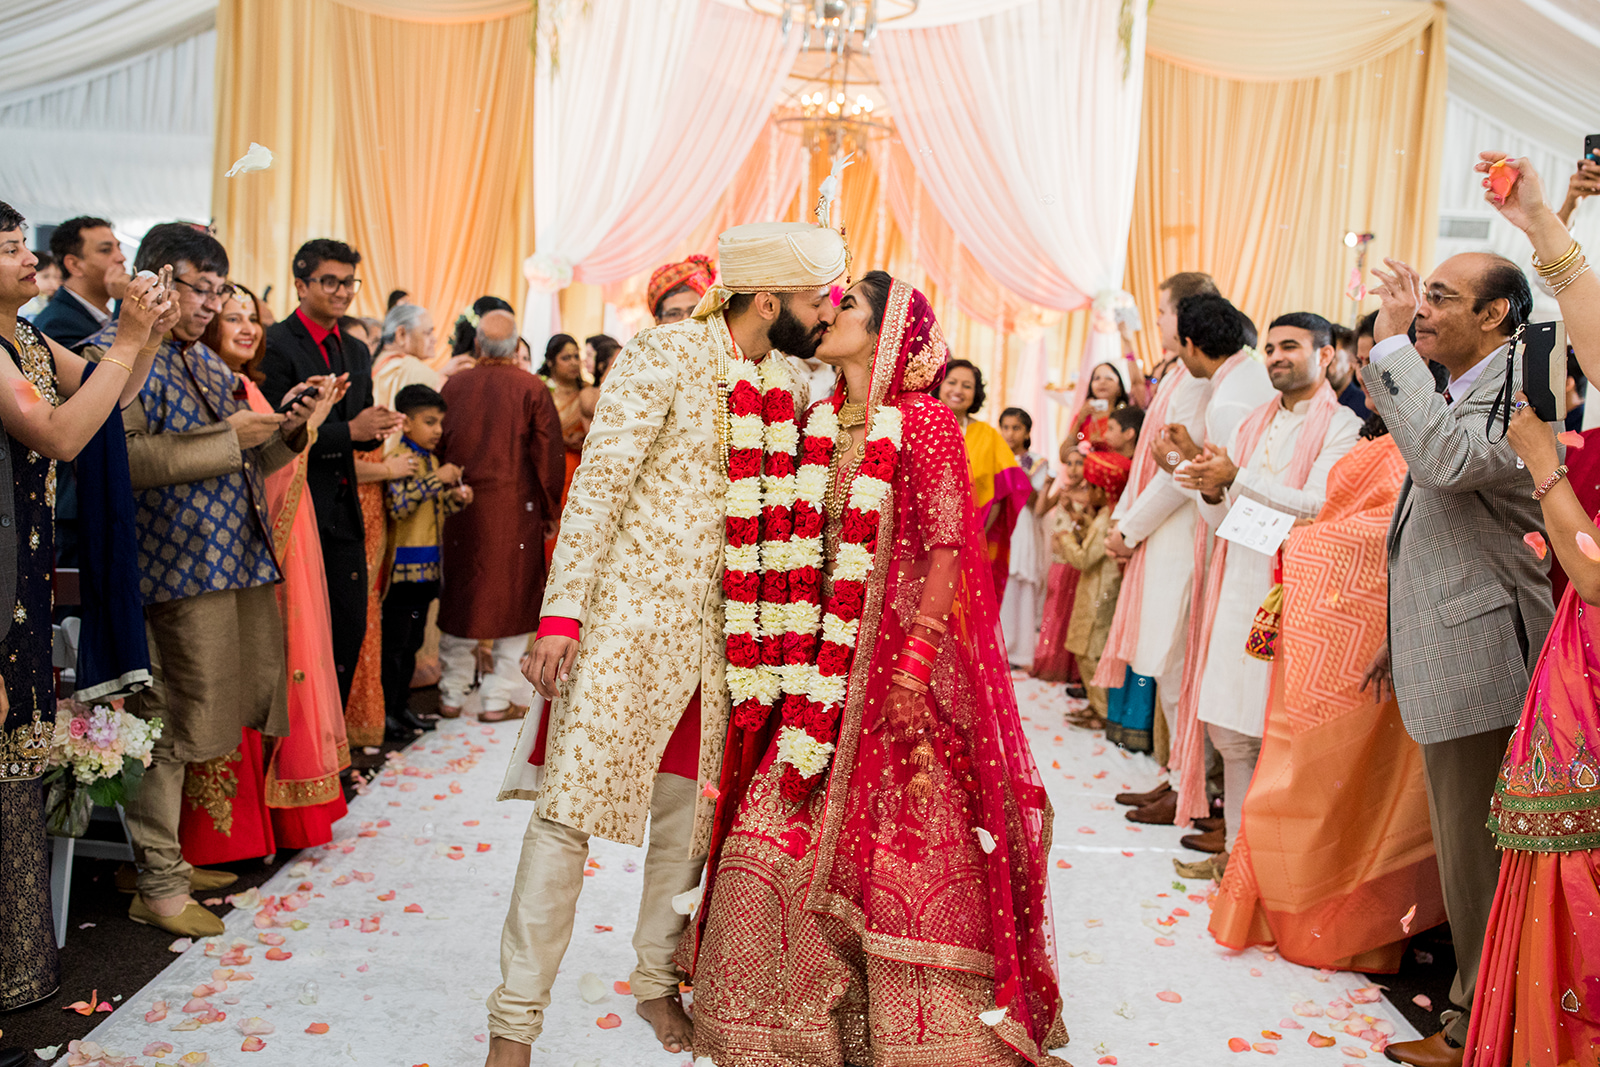 Le Cape Weddings - Sumeet and Chavi - Ceremony --102.jpg